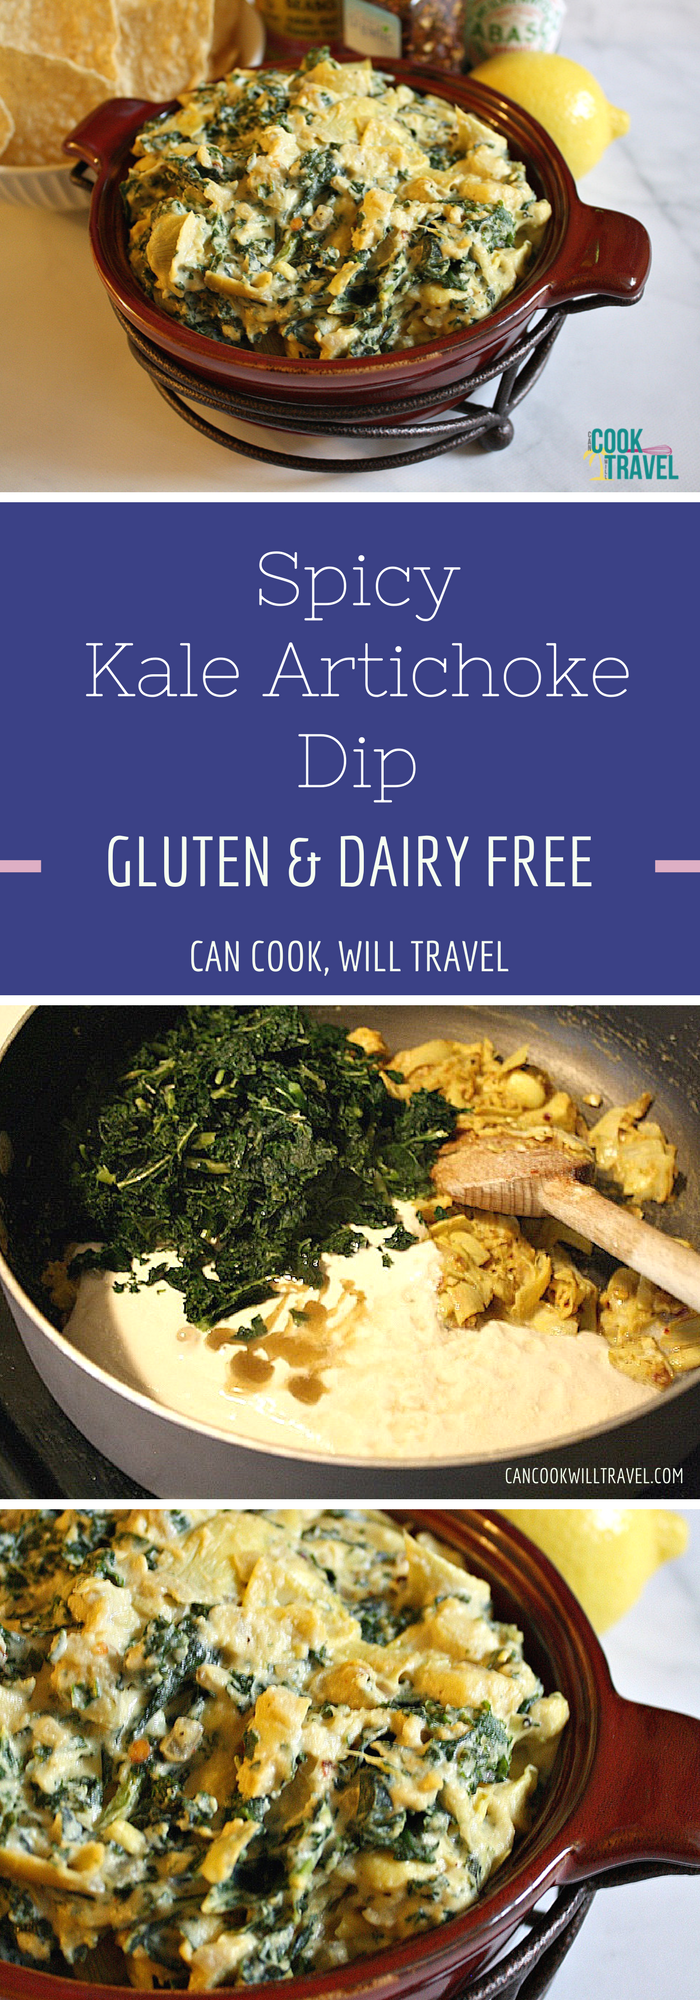 Spicy Kale Artichoke Dip_Collage2